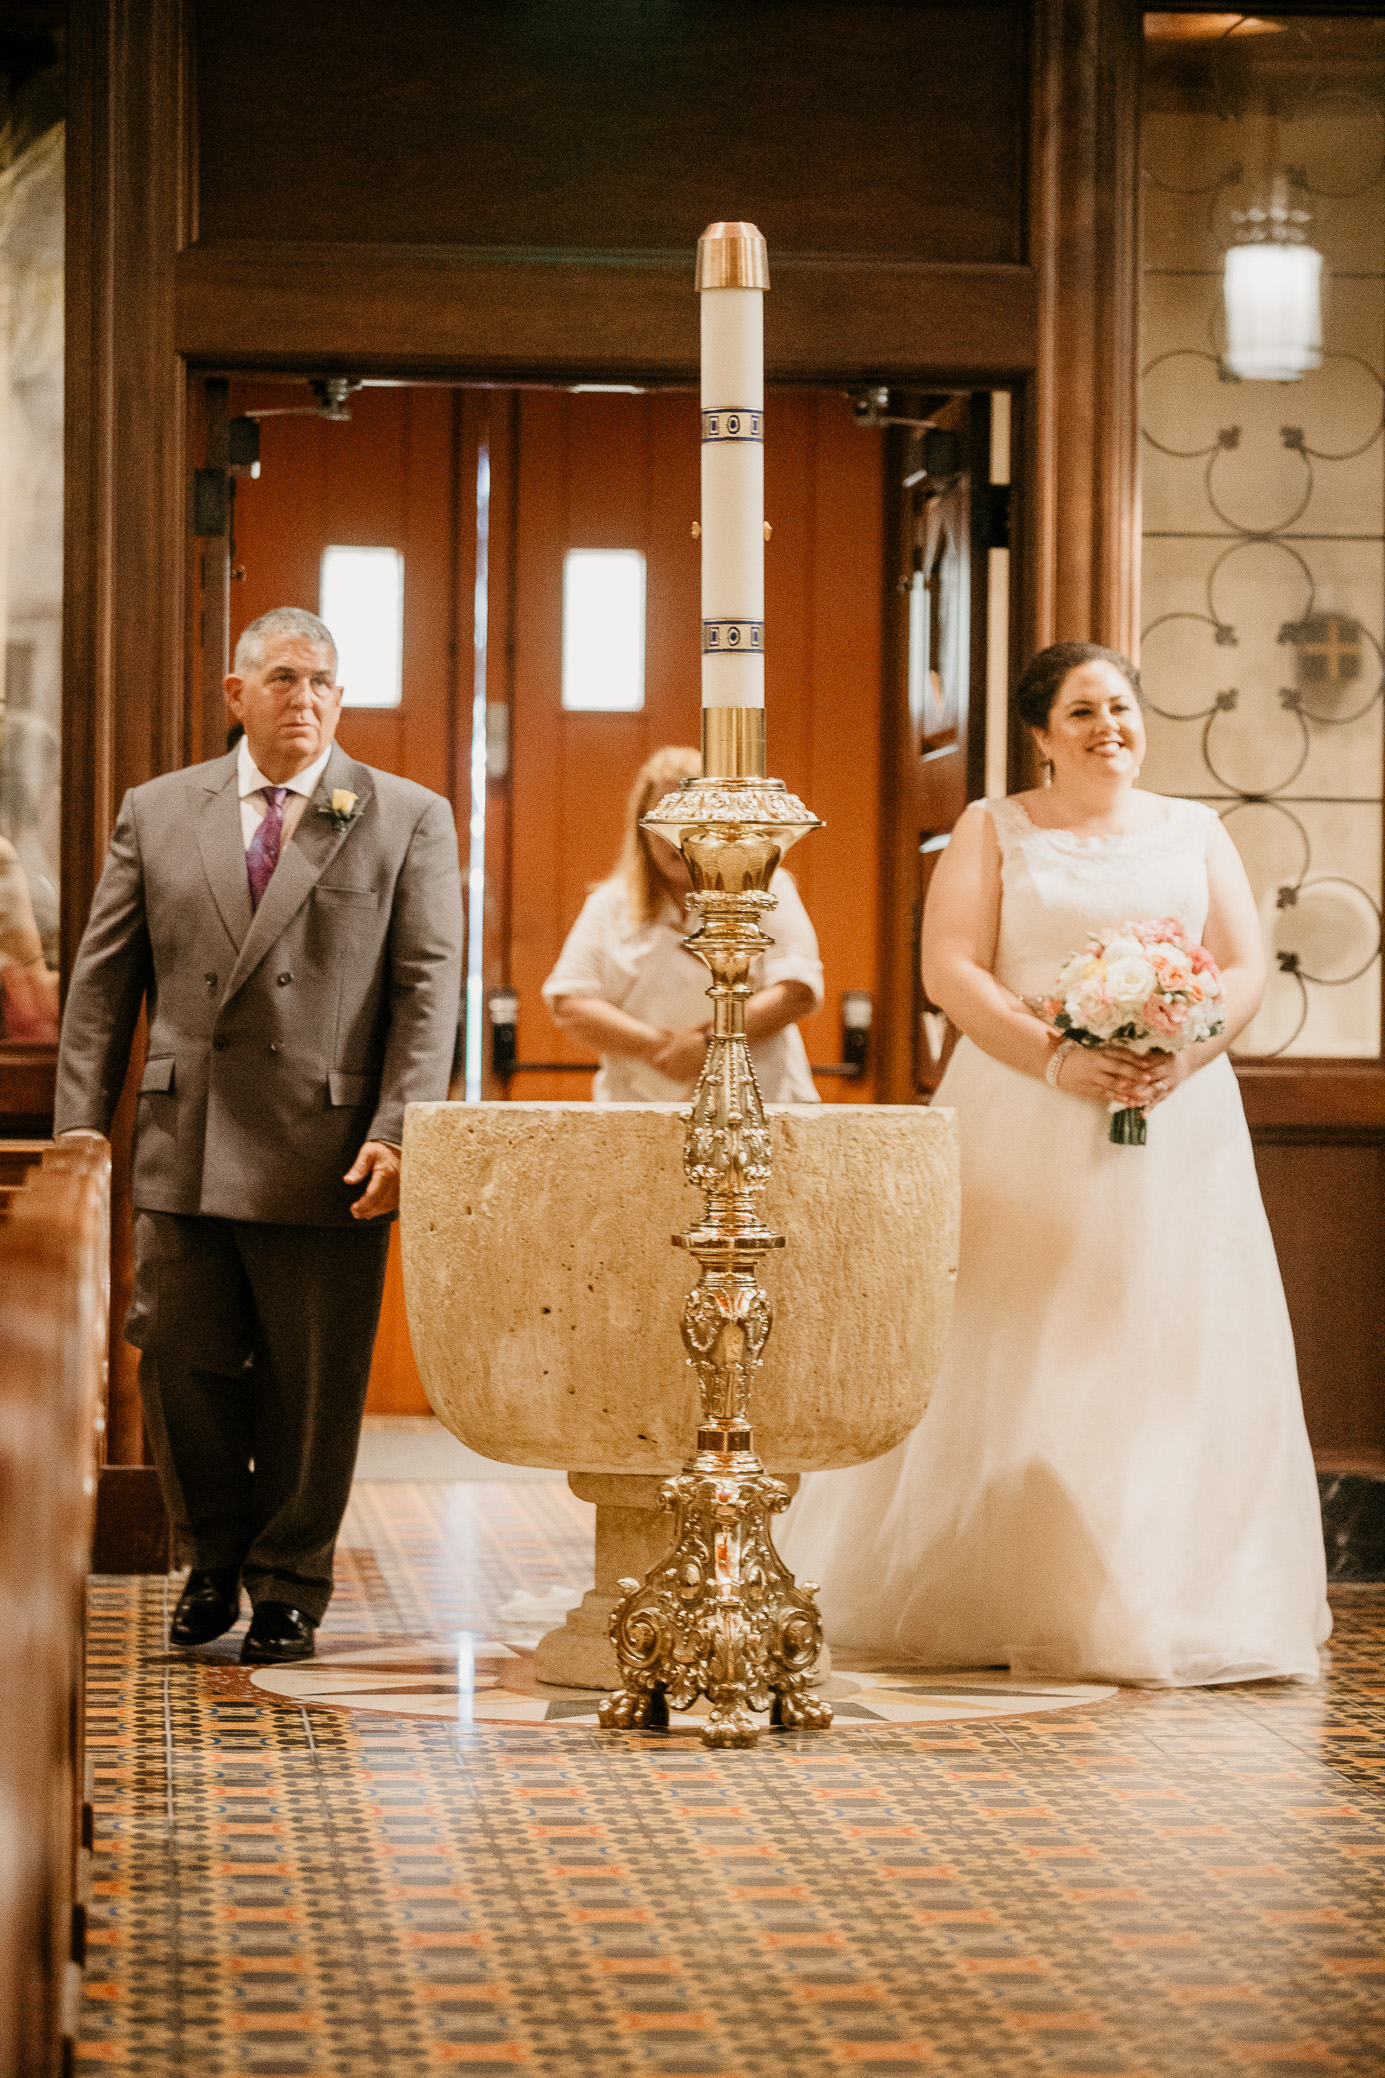 Wedding photography in St. Augustine, Florida at the Cathedral Basilica and The Treasury on July 13th, 2018 by David A. Smith of DSmithImages Wedding Photography, Portraits, and Events in the Birmingham, Alabama area.